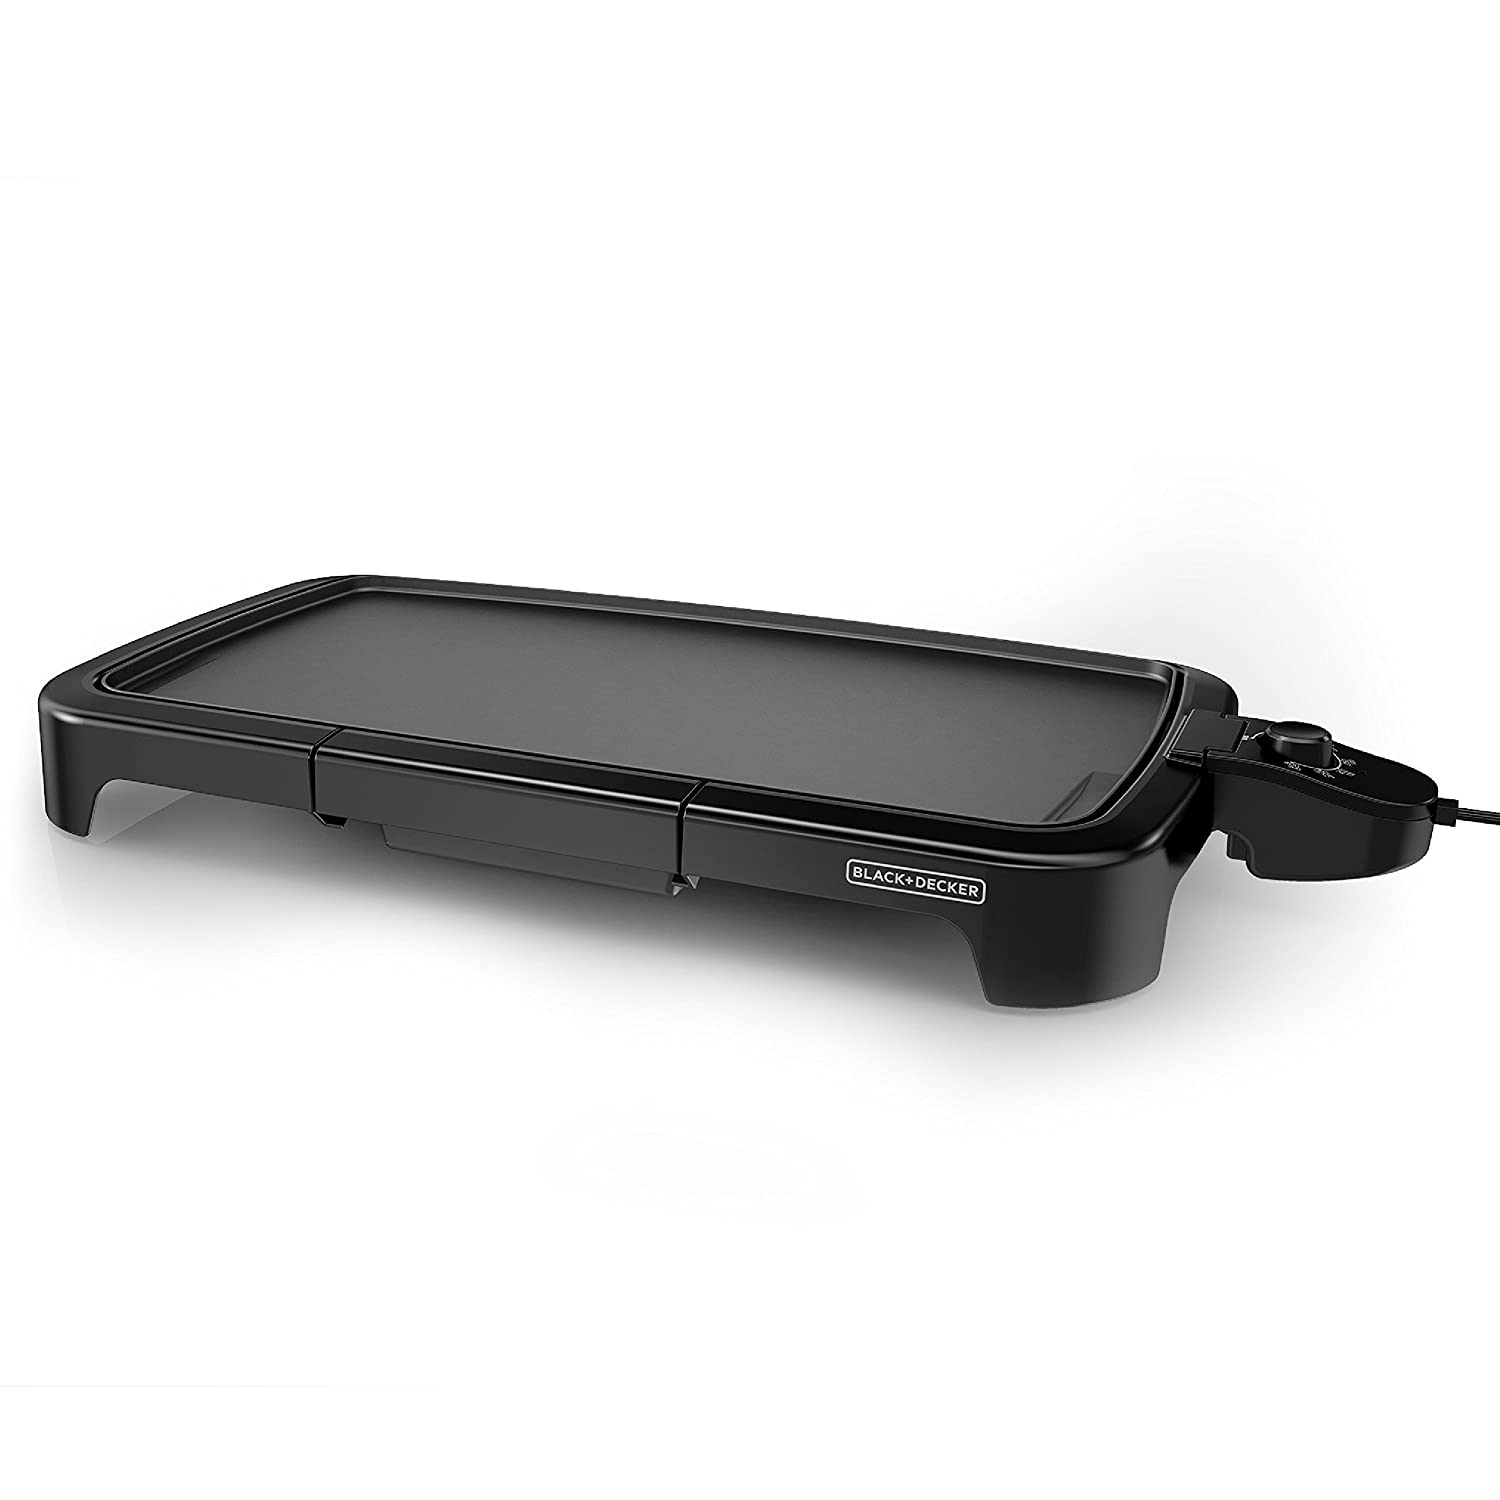 Best Electric Griddle Reviews 2019: Top 5+ Recommended 3 #cookymom